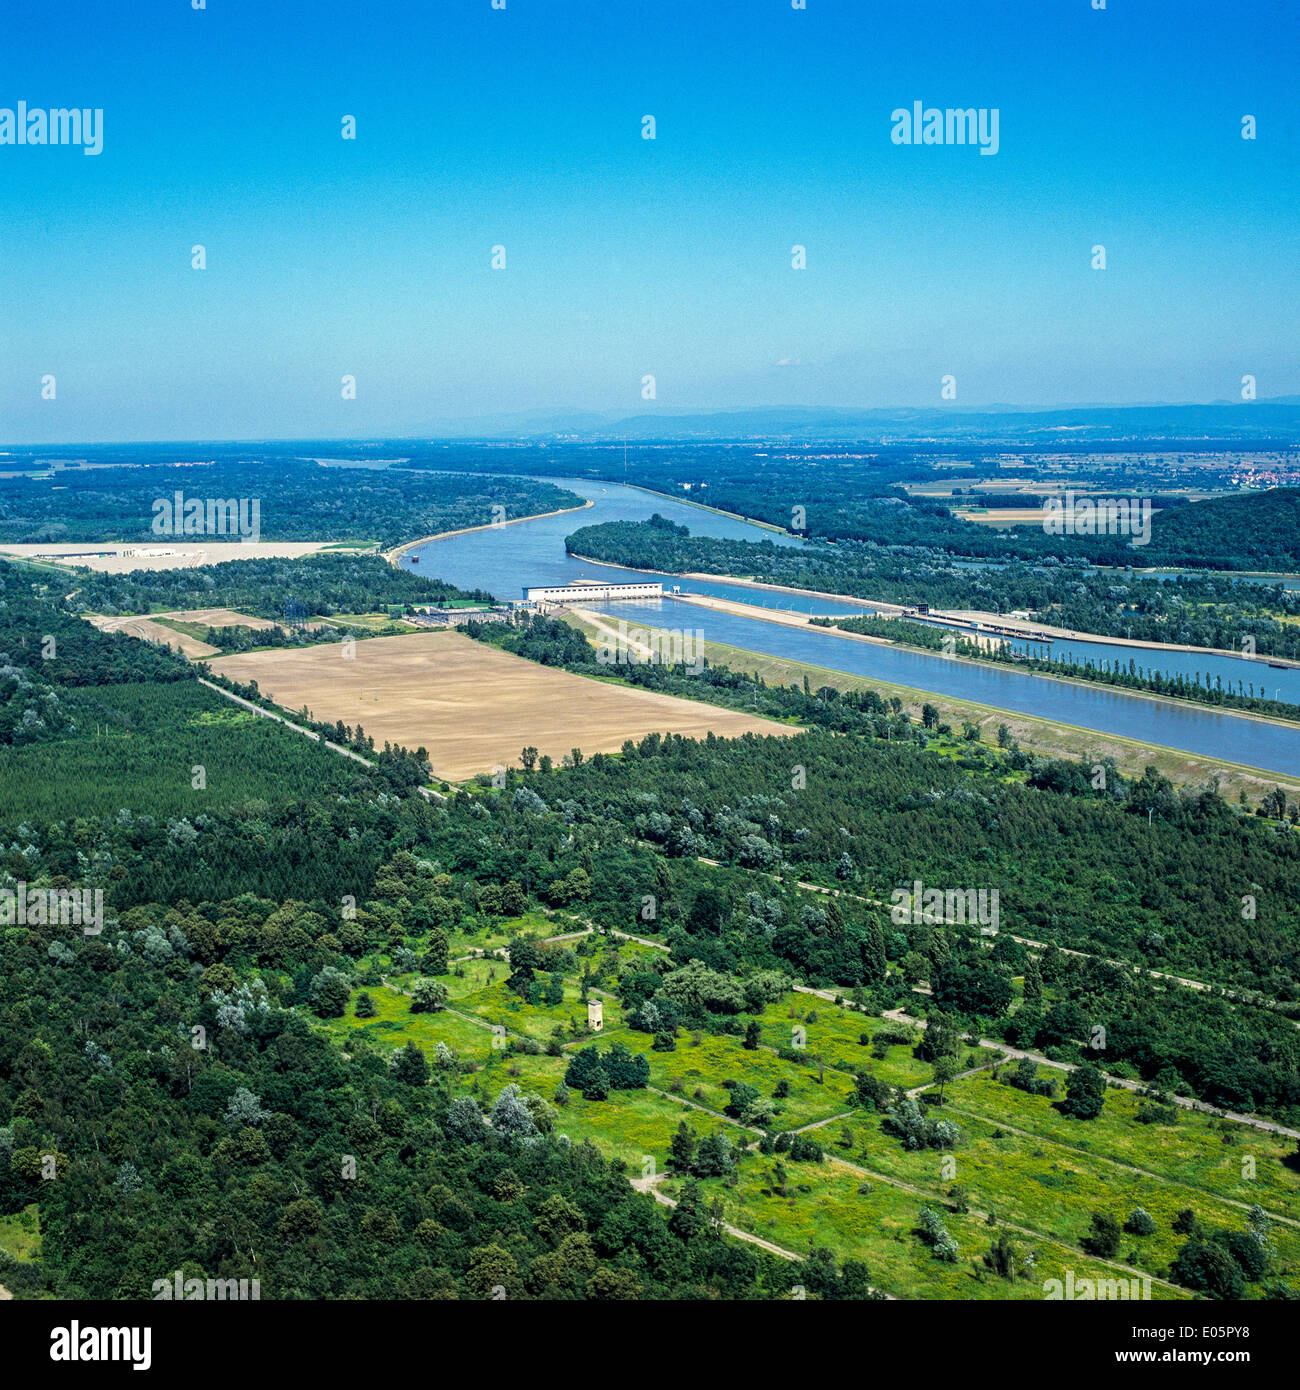 Aerial view of Marckolsheim hydroelectric power station and dam on Rhine river Alsace France Europe - Stock Image